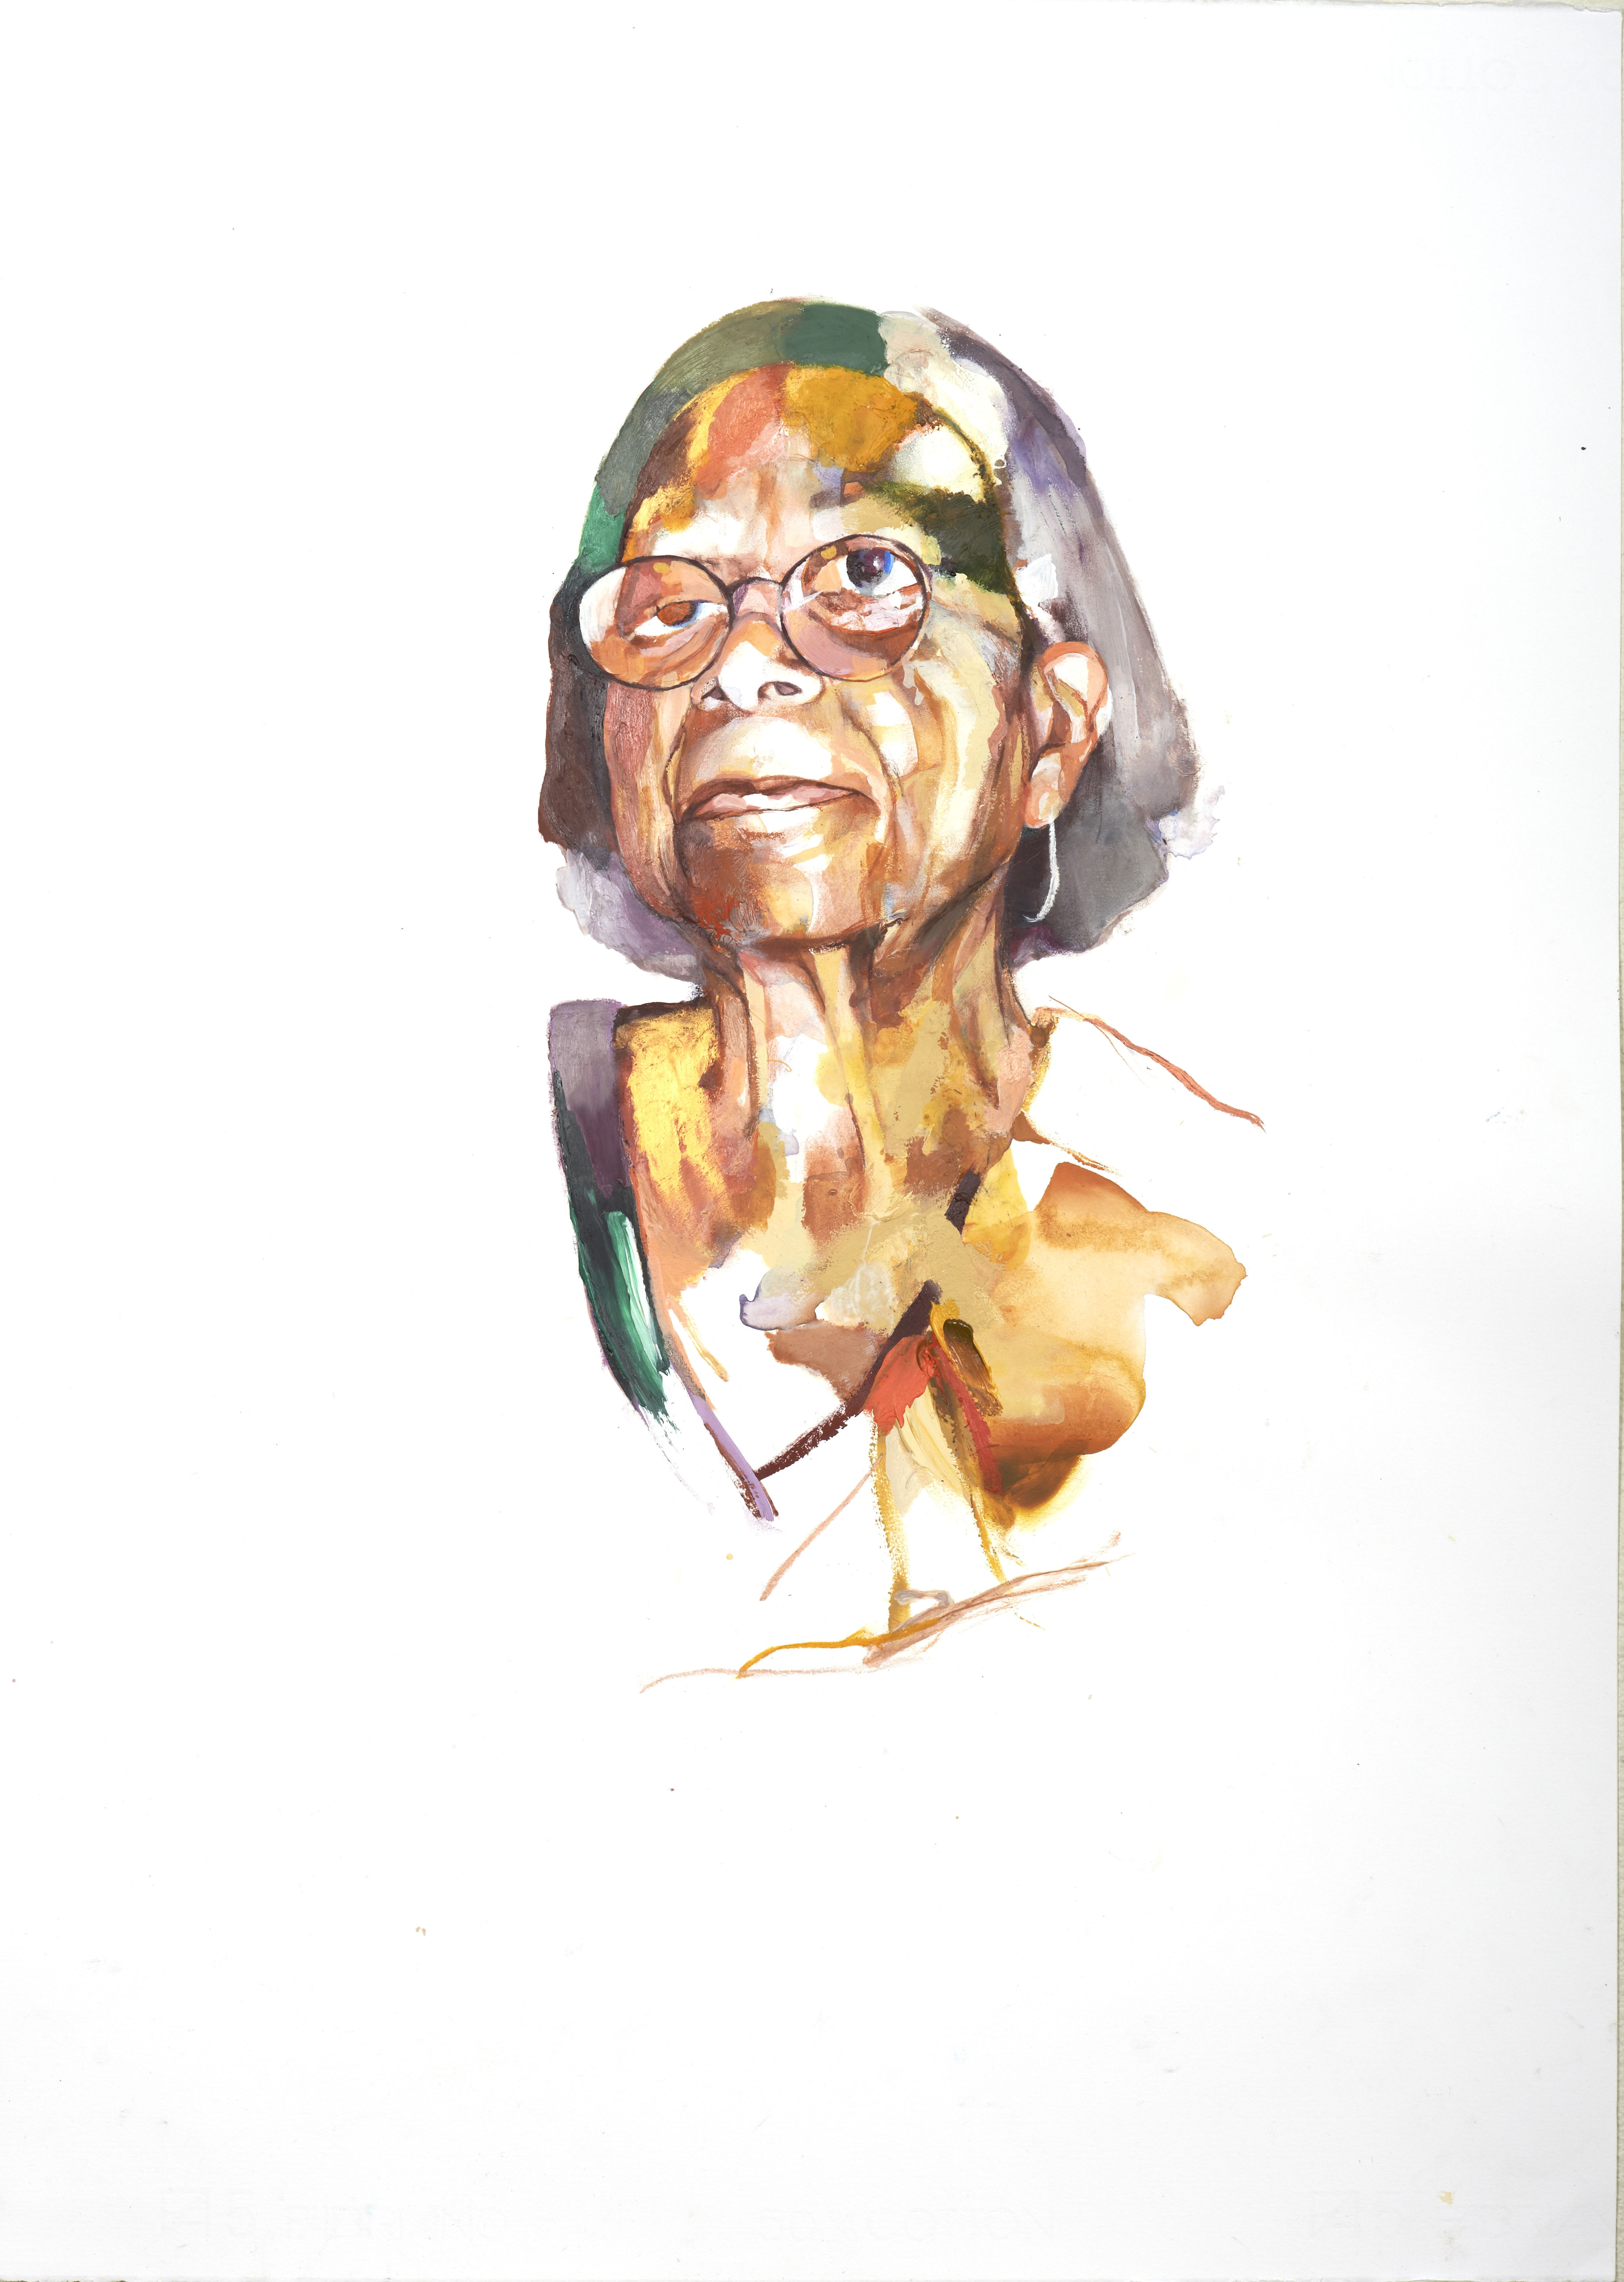 A watercolor painting of a woman wearing glasses